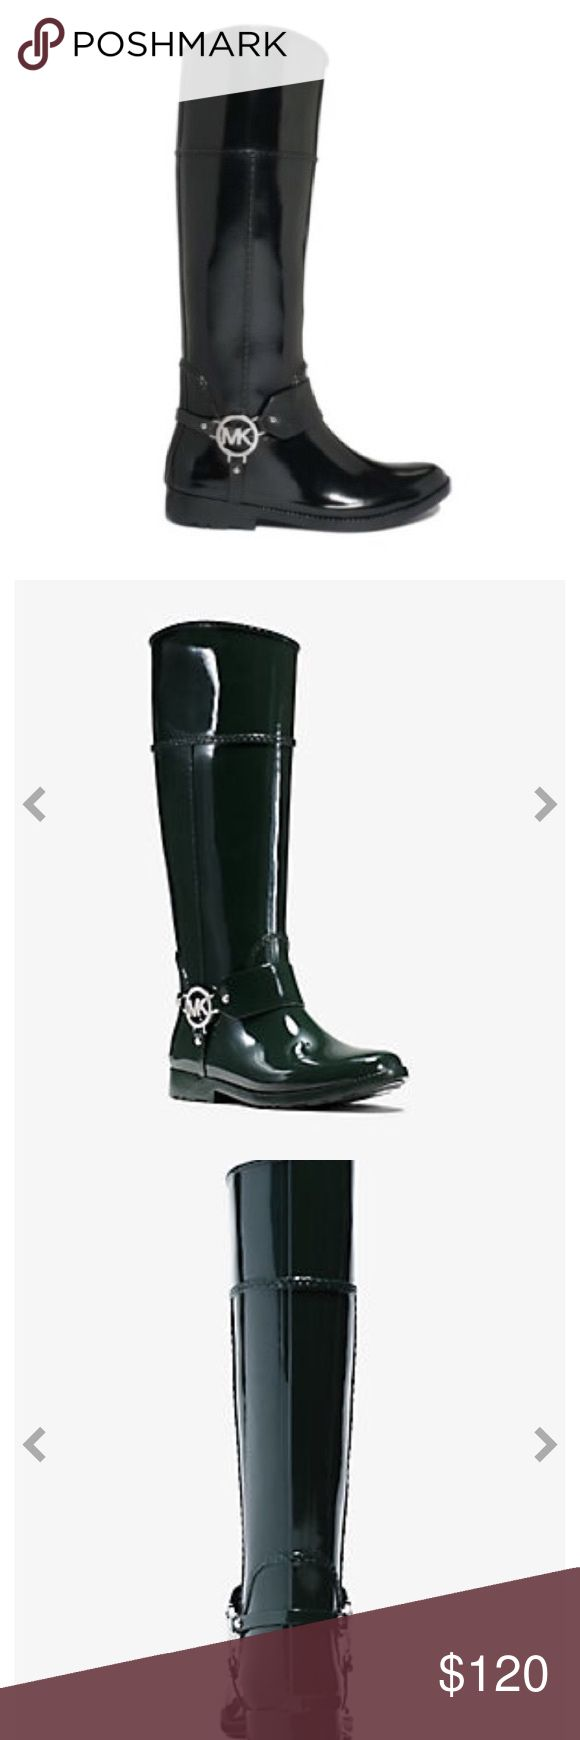 MICHAEL KORS FULTON RAIN BOOT make an offer  NEW ----MICHAEL KORS FULTON LOGO RUBBER RAIN BOOT.  Black . Brand New. Never worn. Michael Kors Shoes Winter & Rain Boots